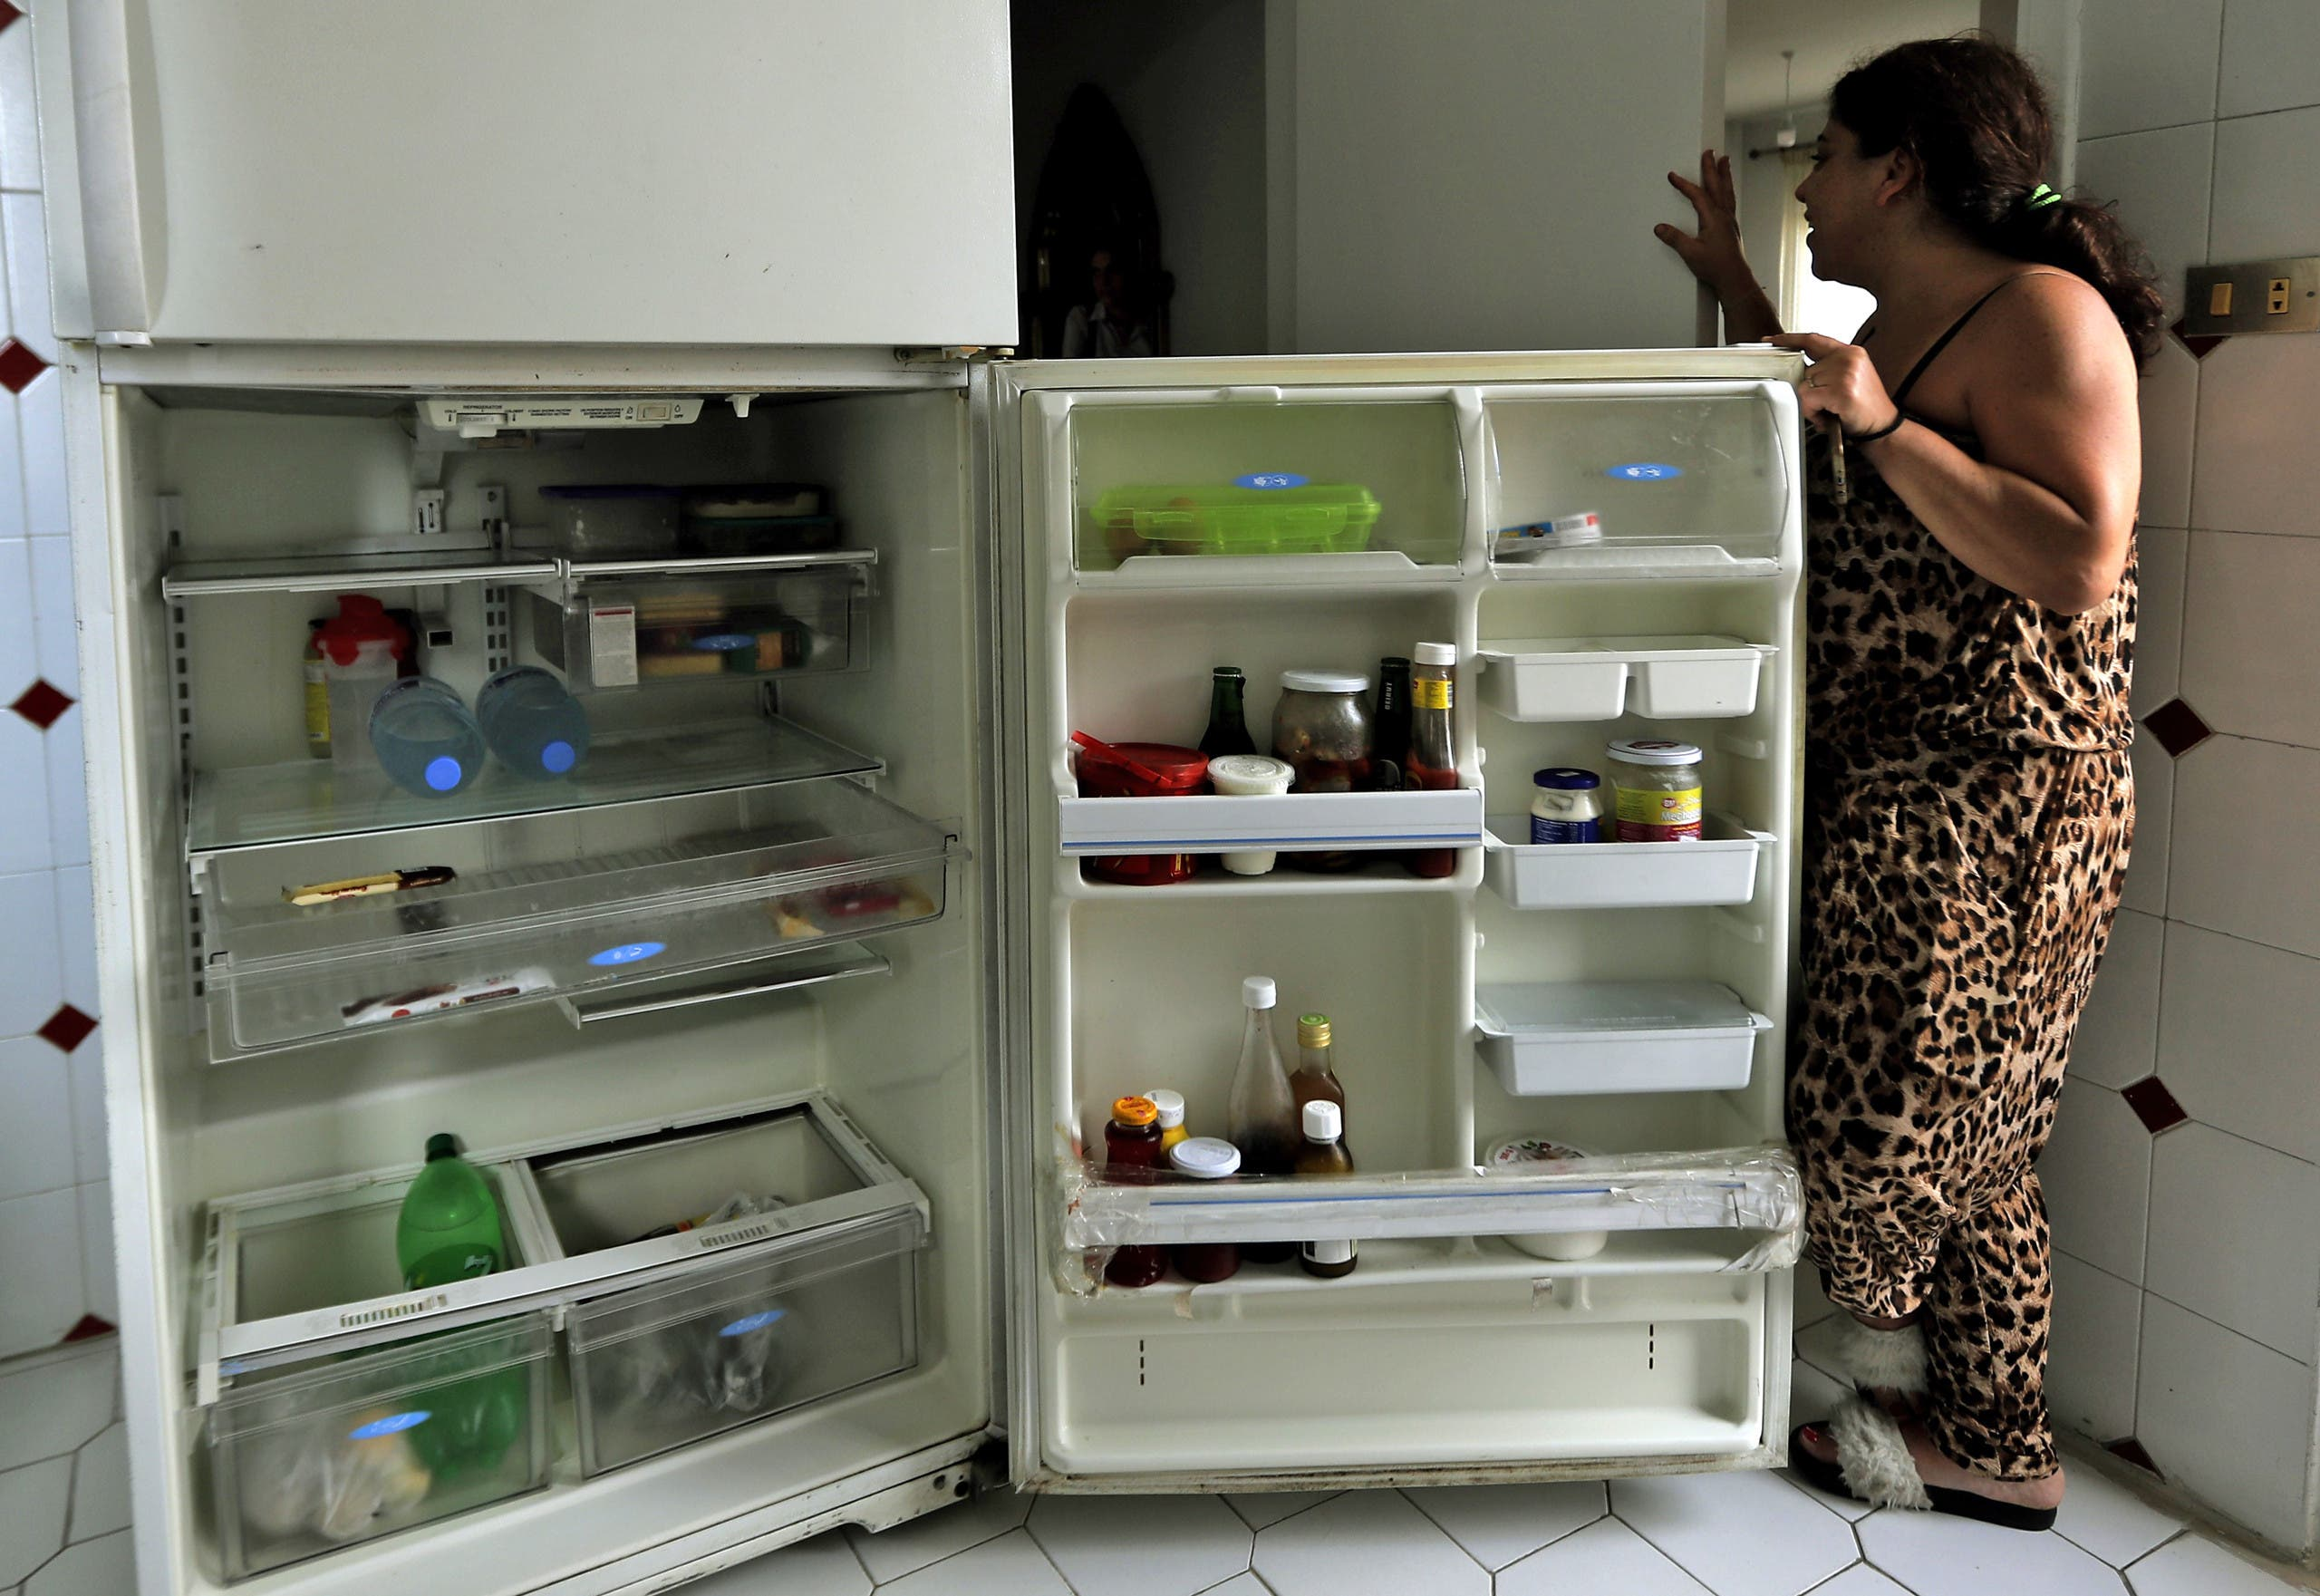 A Lebanese woman displays the content of her refrigerator at her apartment in Jounieh, north of the capital Beirut, on June 19, 2020. (AFP)